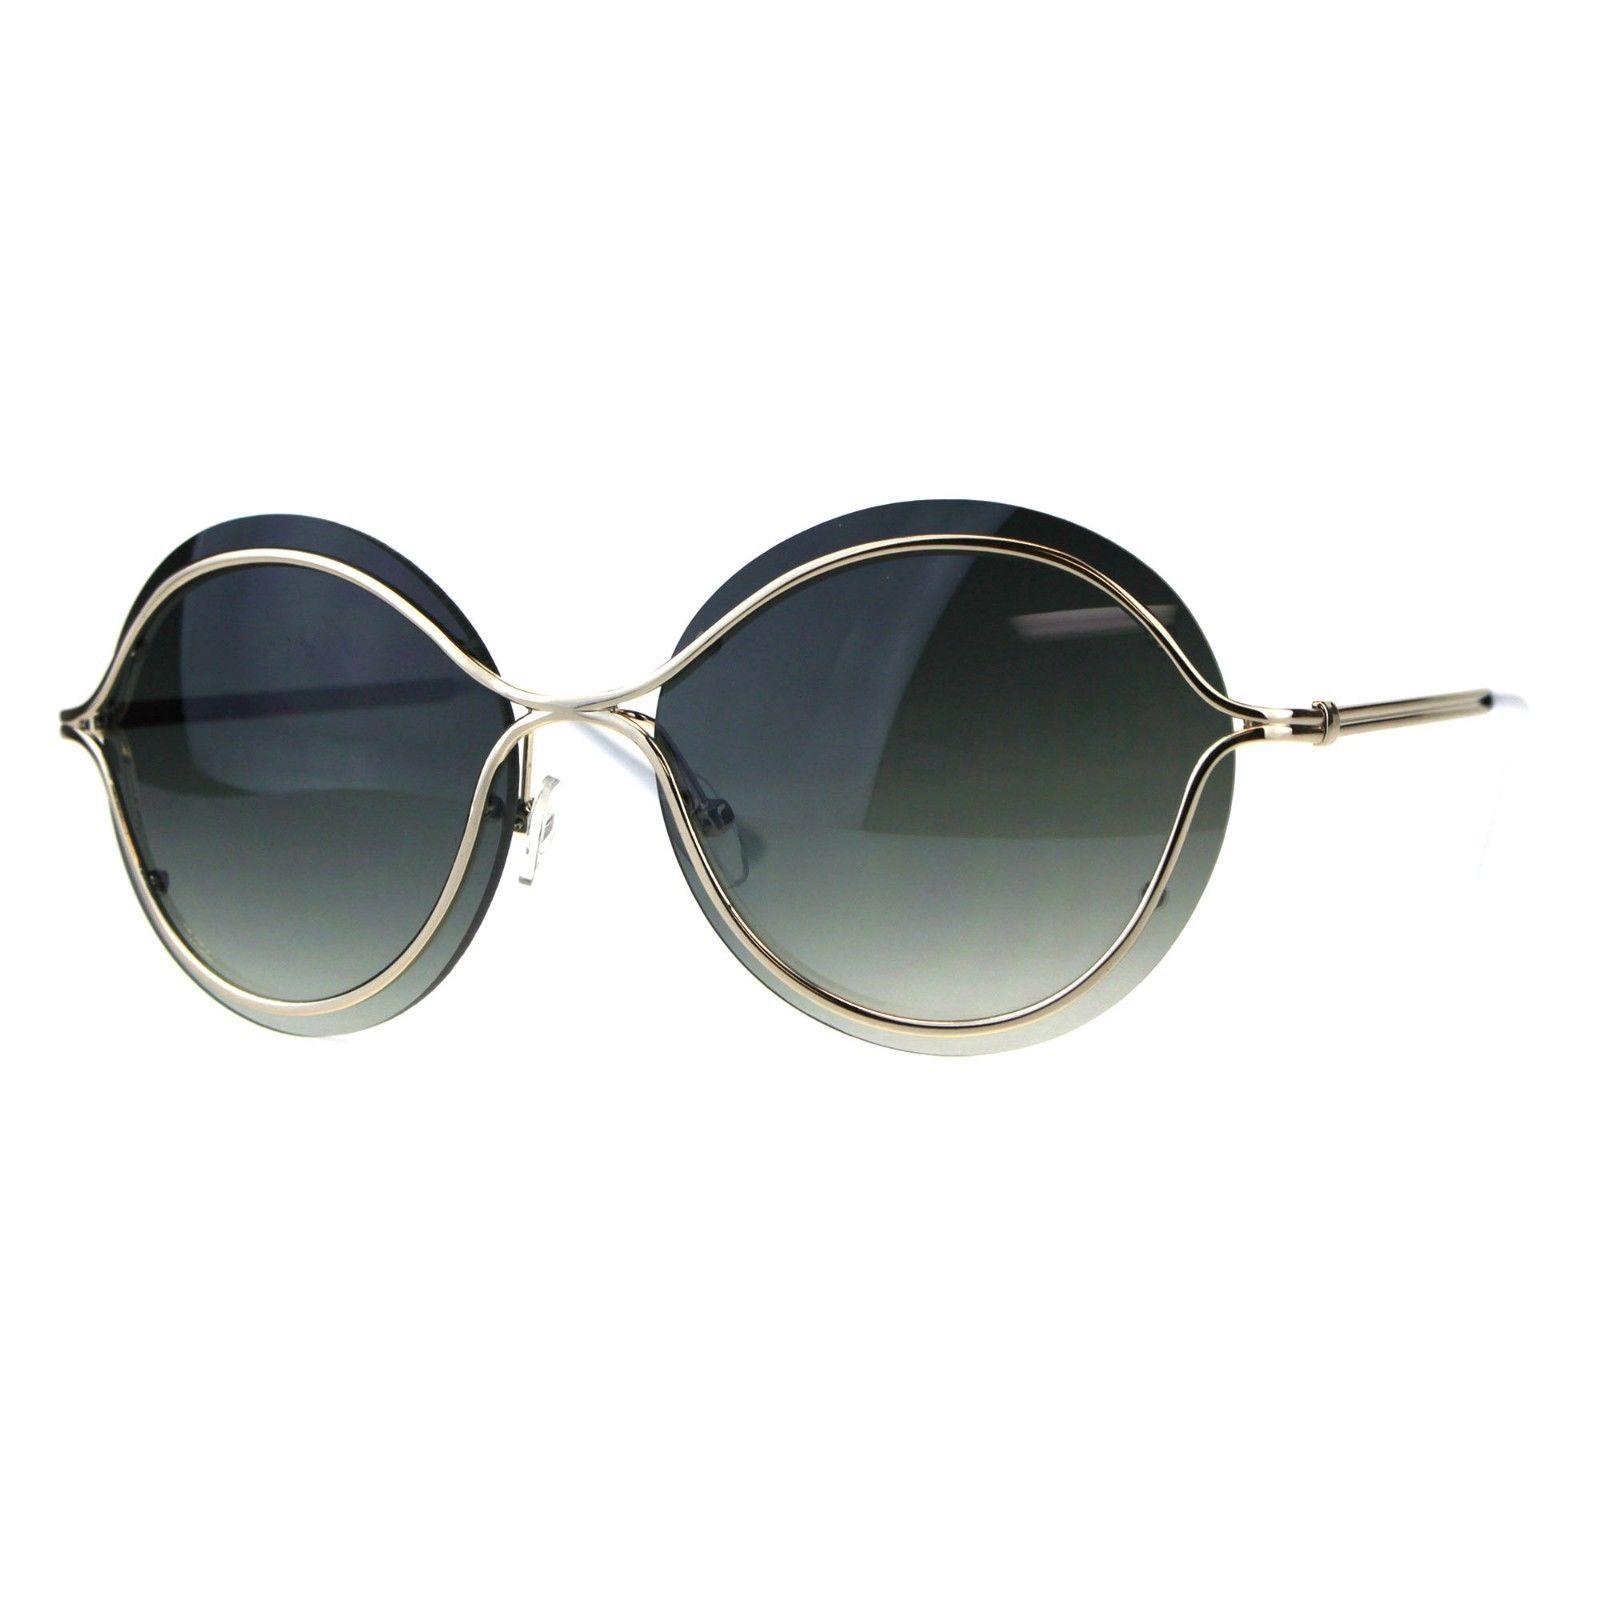 Womens Round Sunglasses Unique Gold Metal Rims Over Lens UV 400